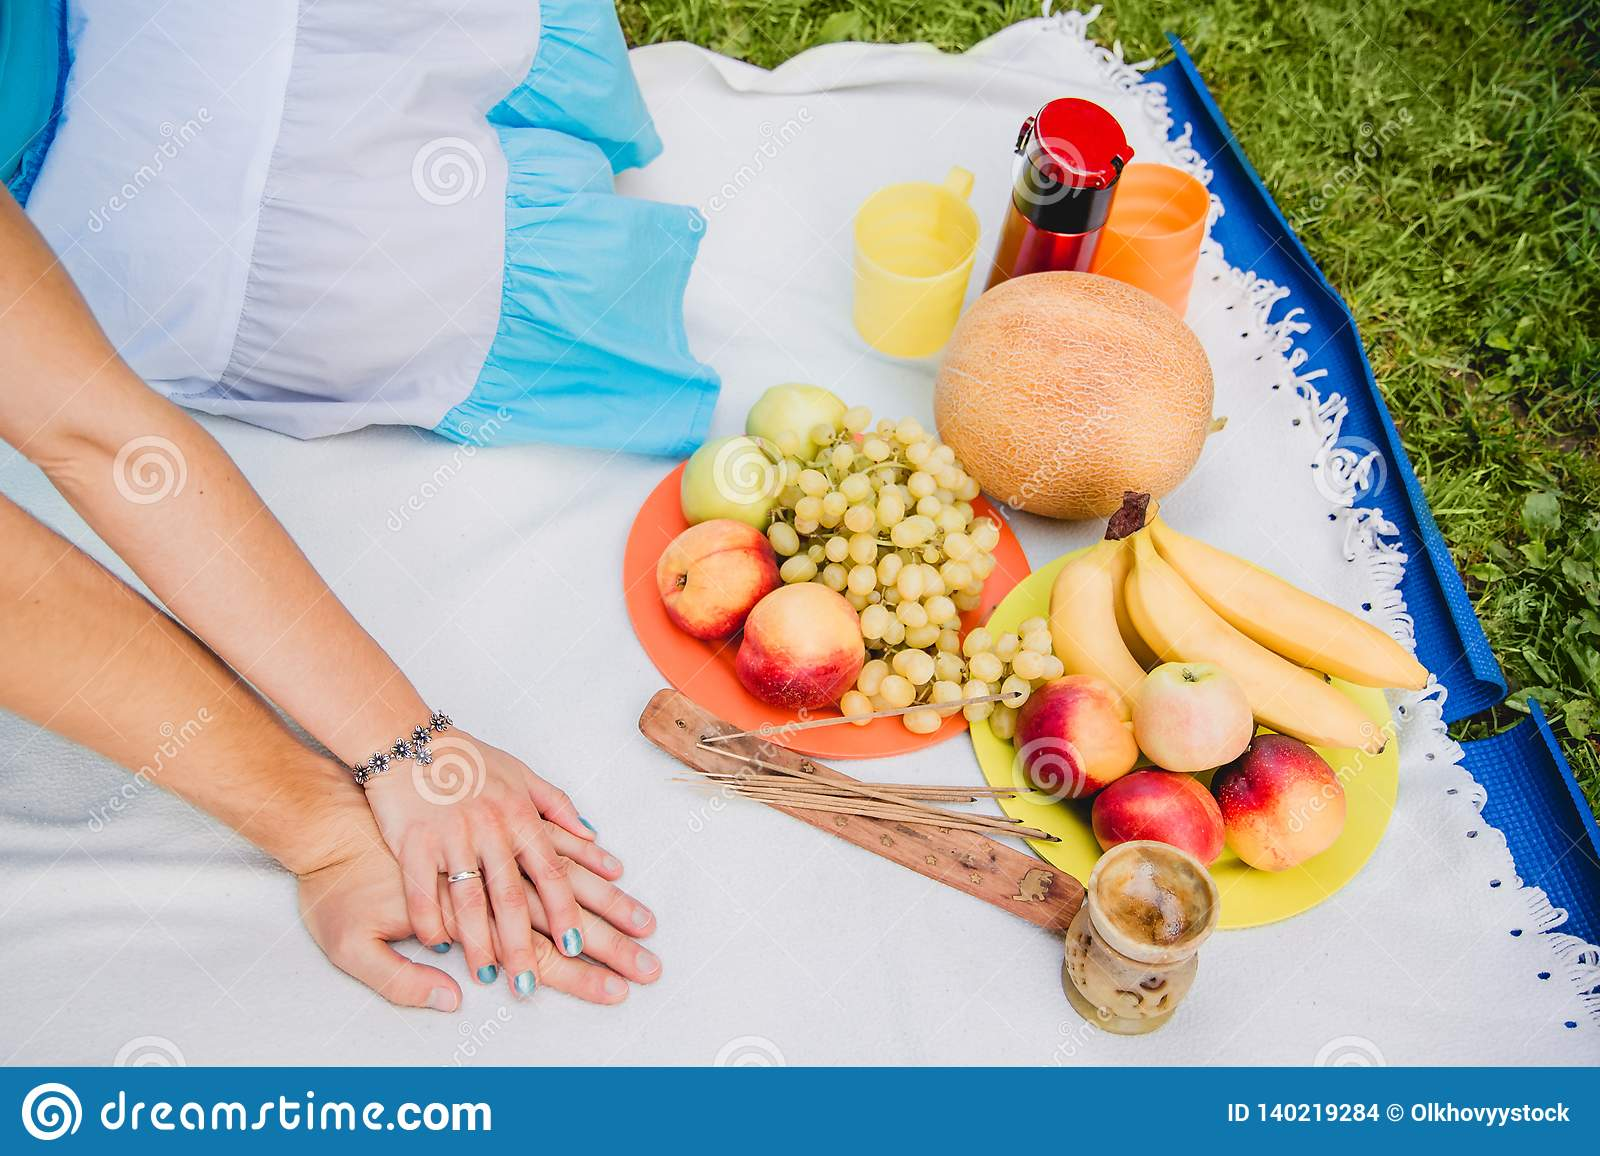 Picnic time. Young couple eating grapes and enjoying in picnic. Love and tenderness, dating, romance, lifestyle concept